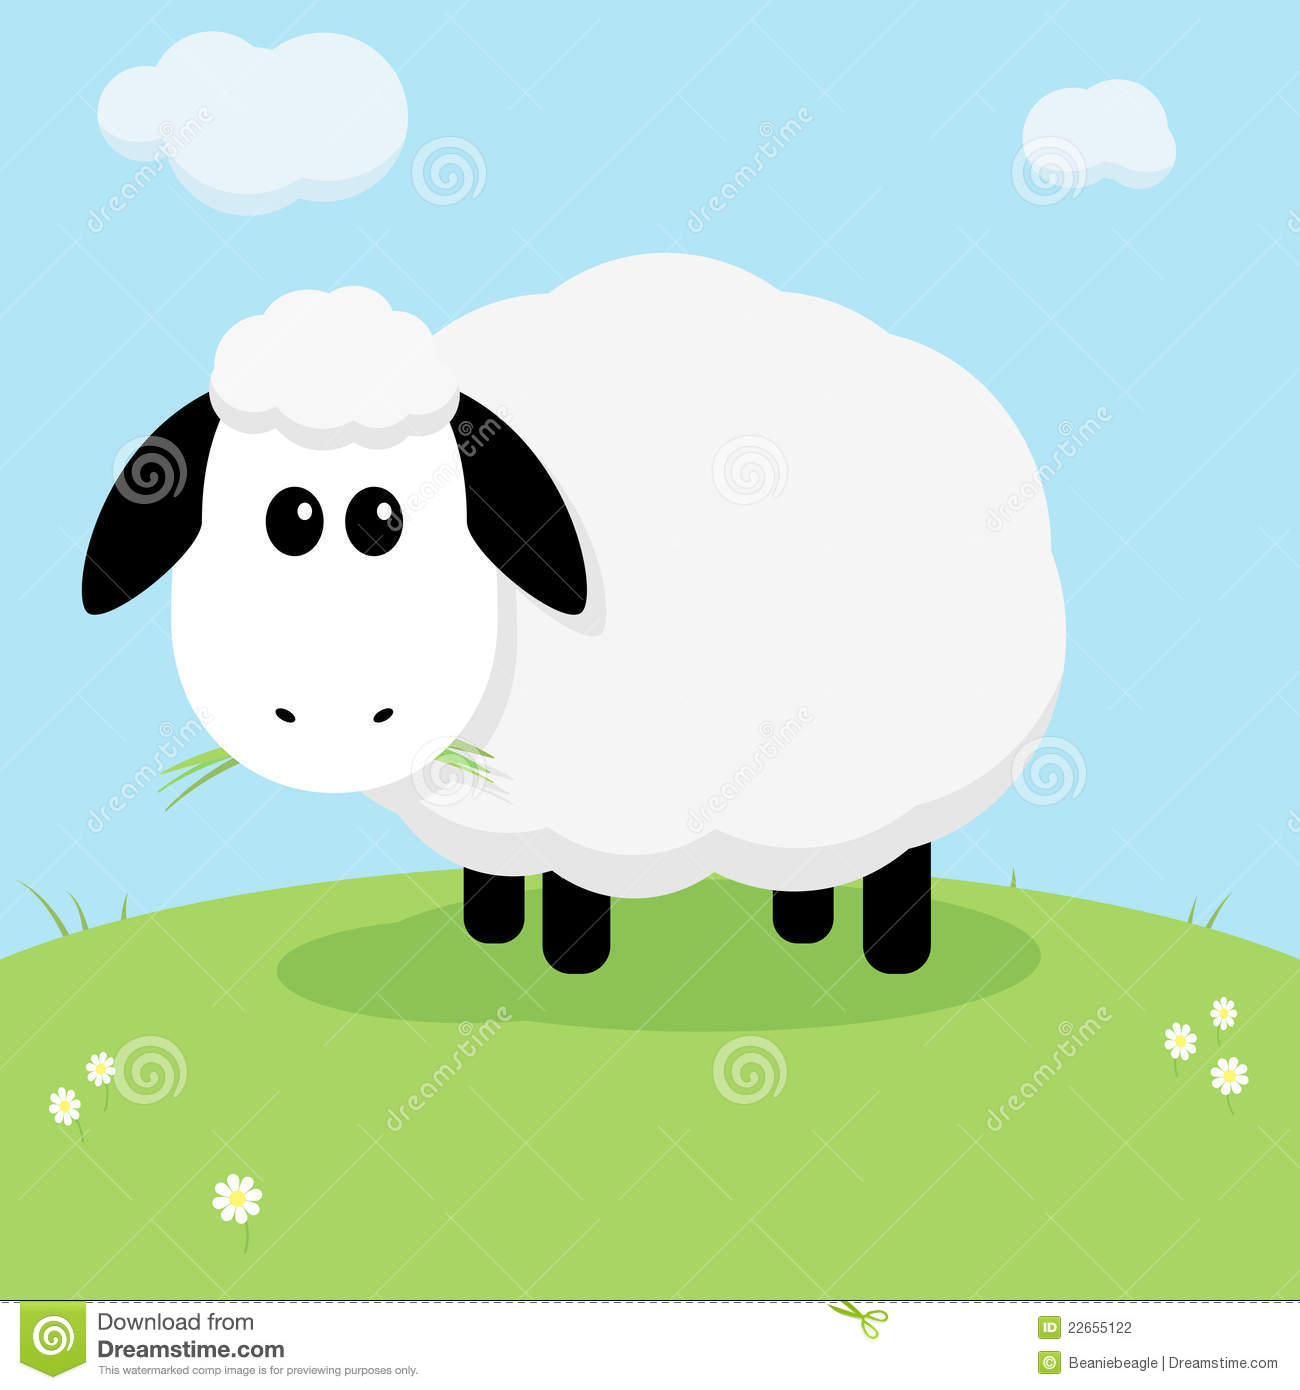 Cute Sheep Drawing Tumblr Cute Sheep Stock Vector Illustration Of Farm Gray Grass